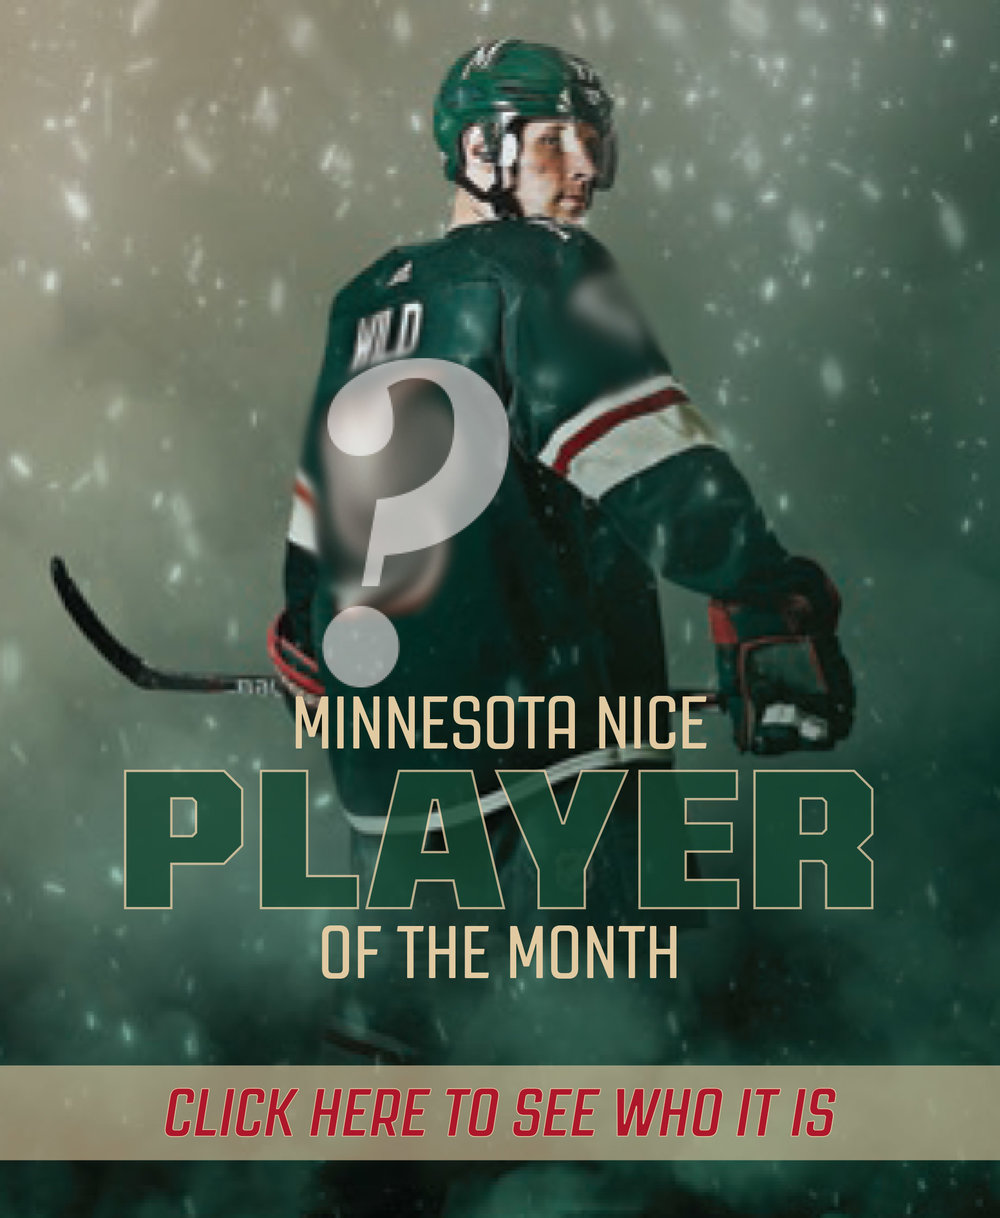 The first Minnesota Wild player will be announced in November!